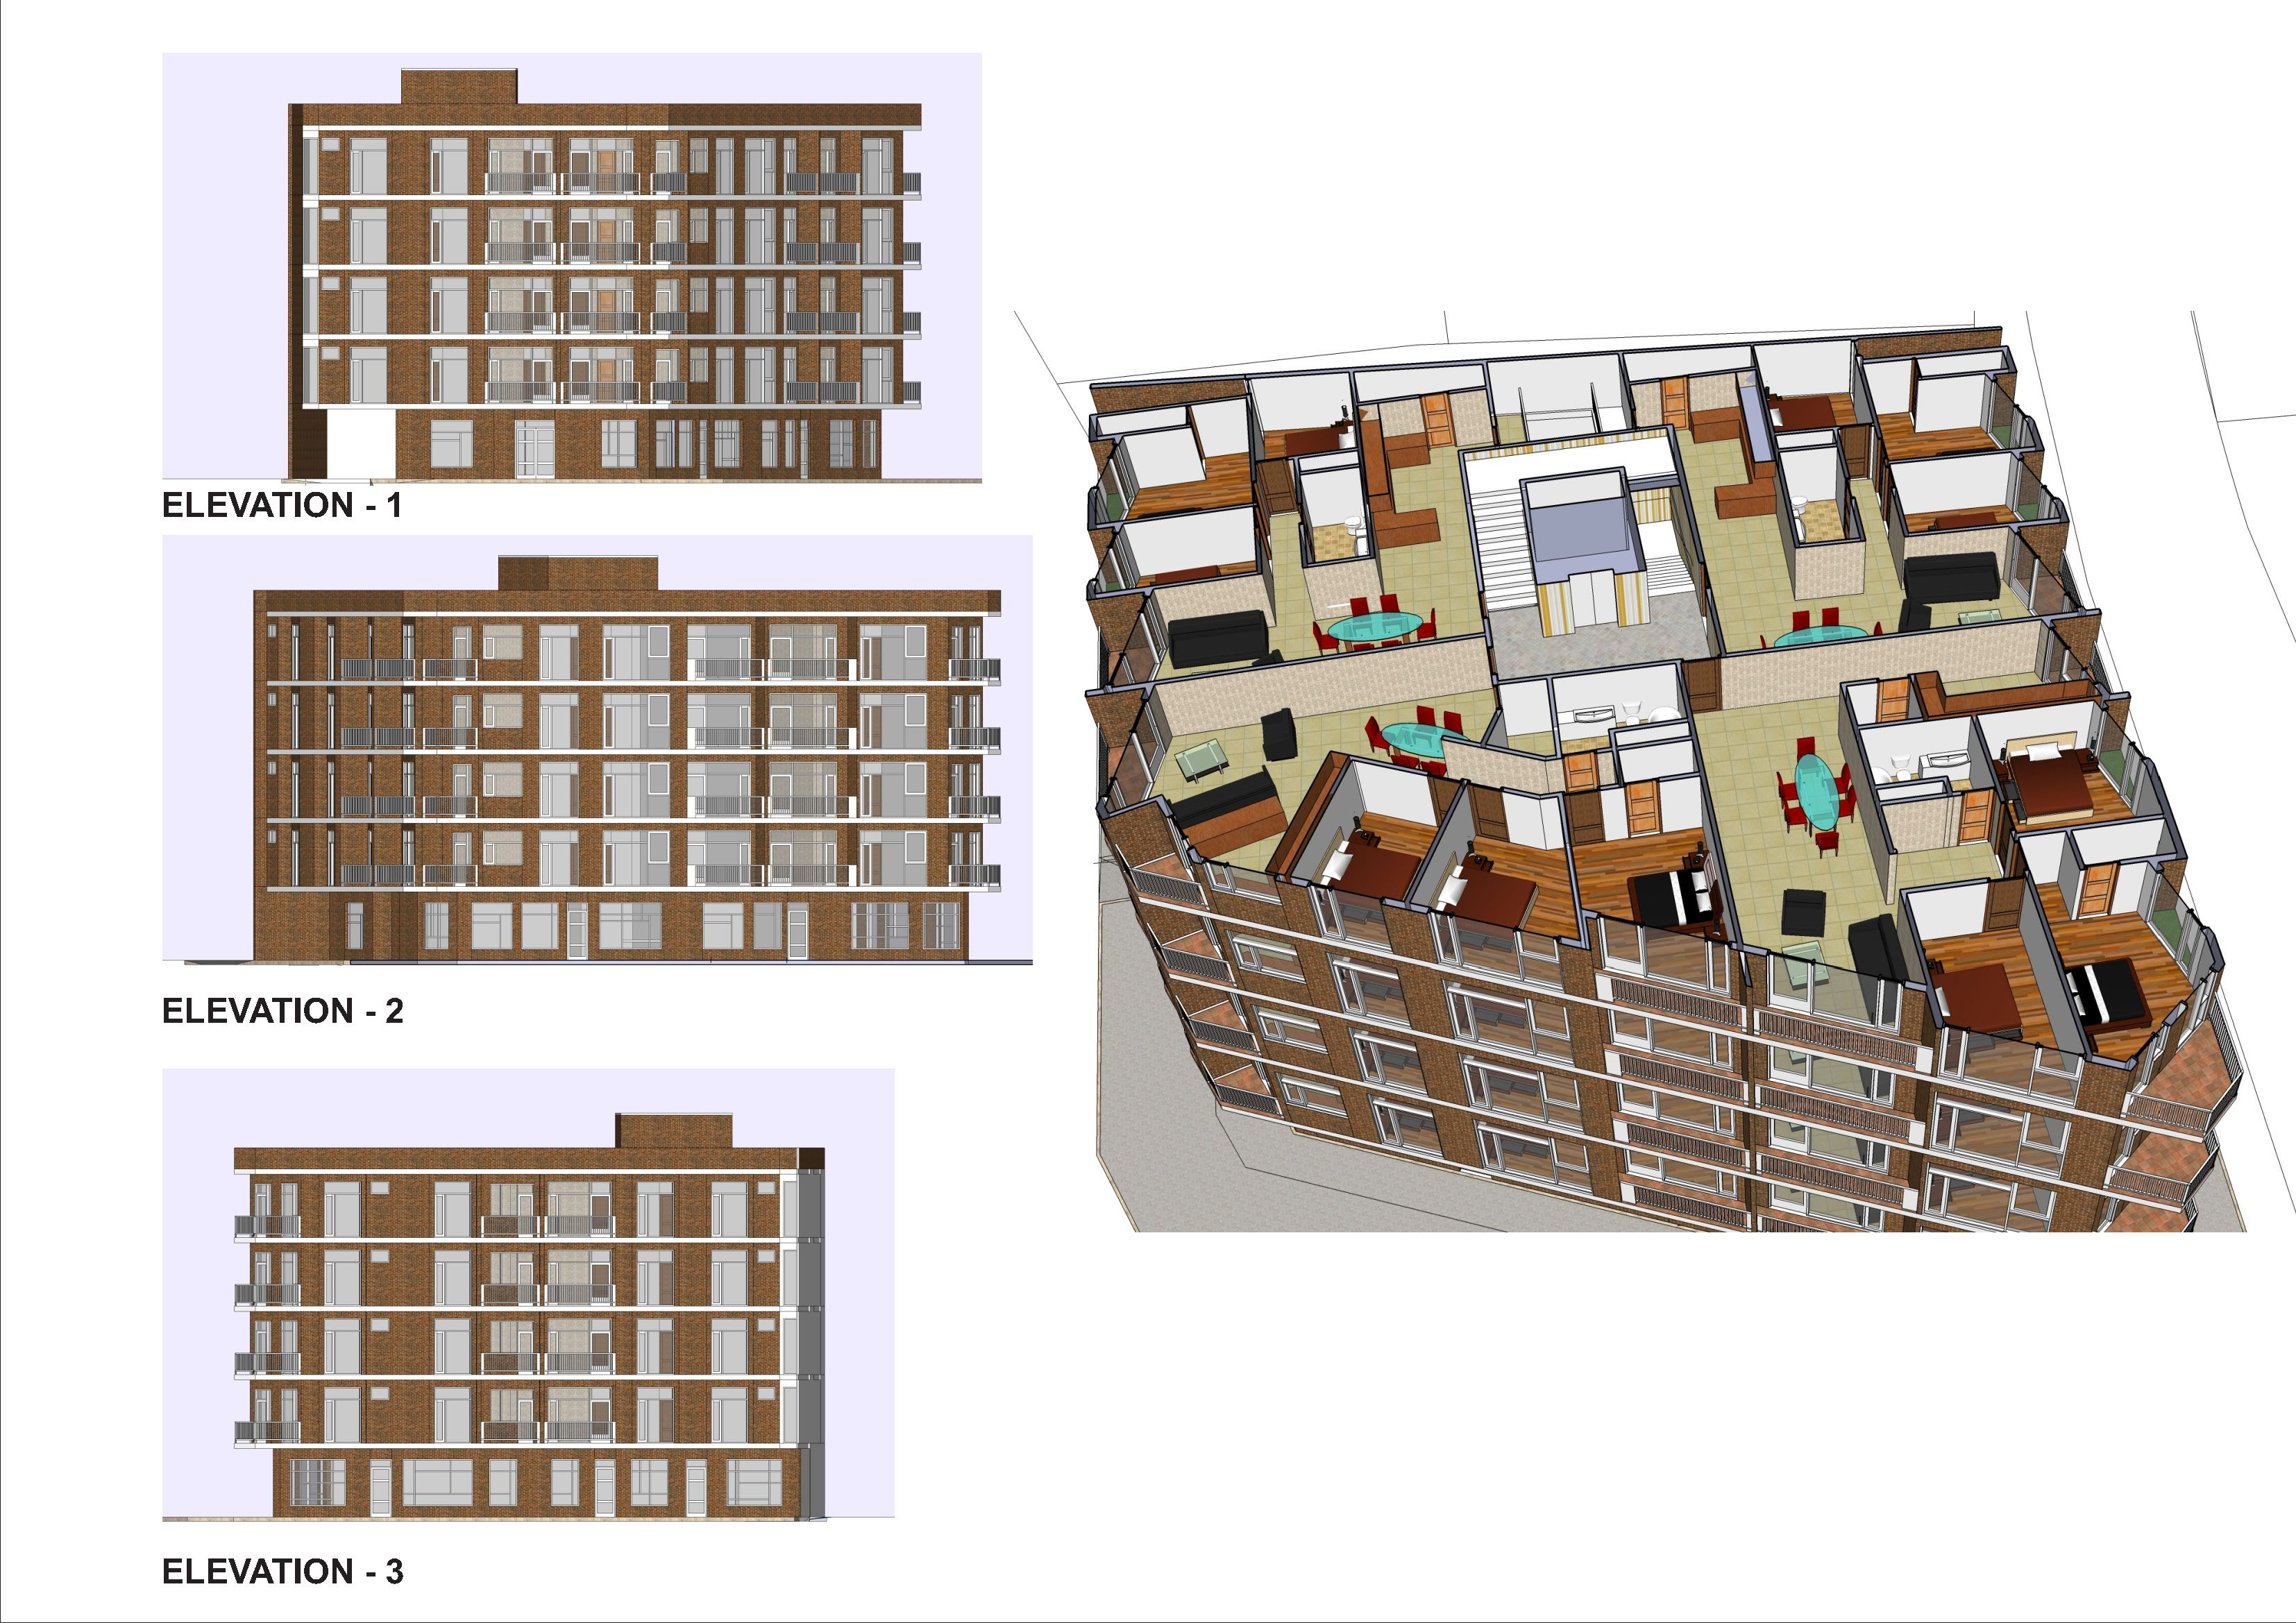 Apartment building plans location aksaray turkey new for Building design photos